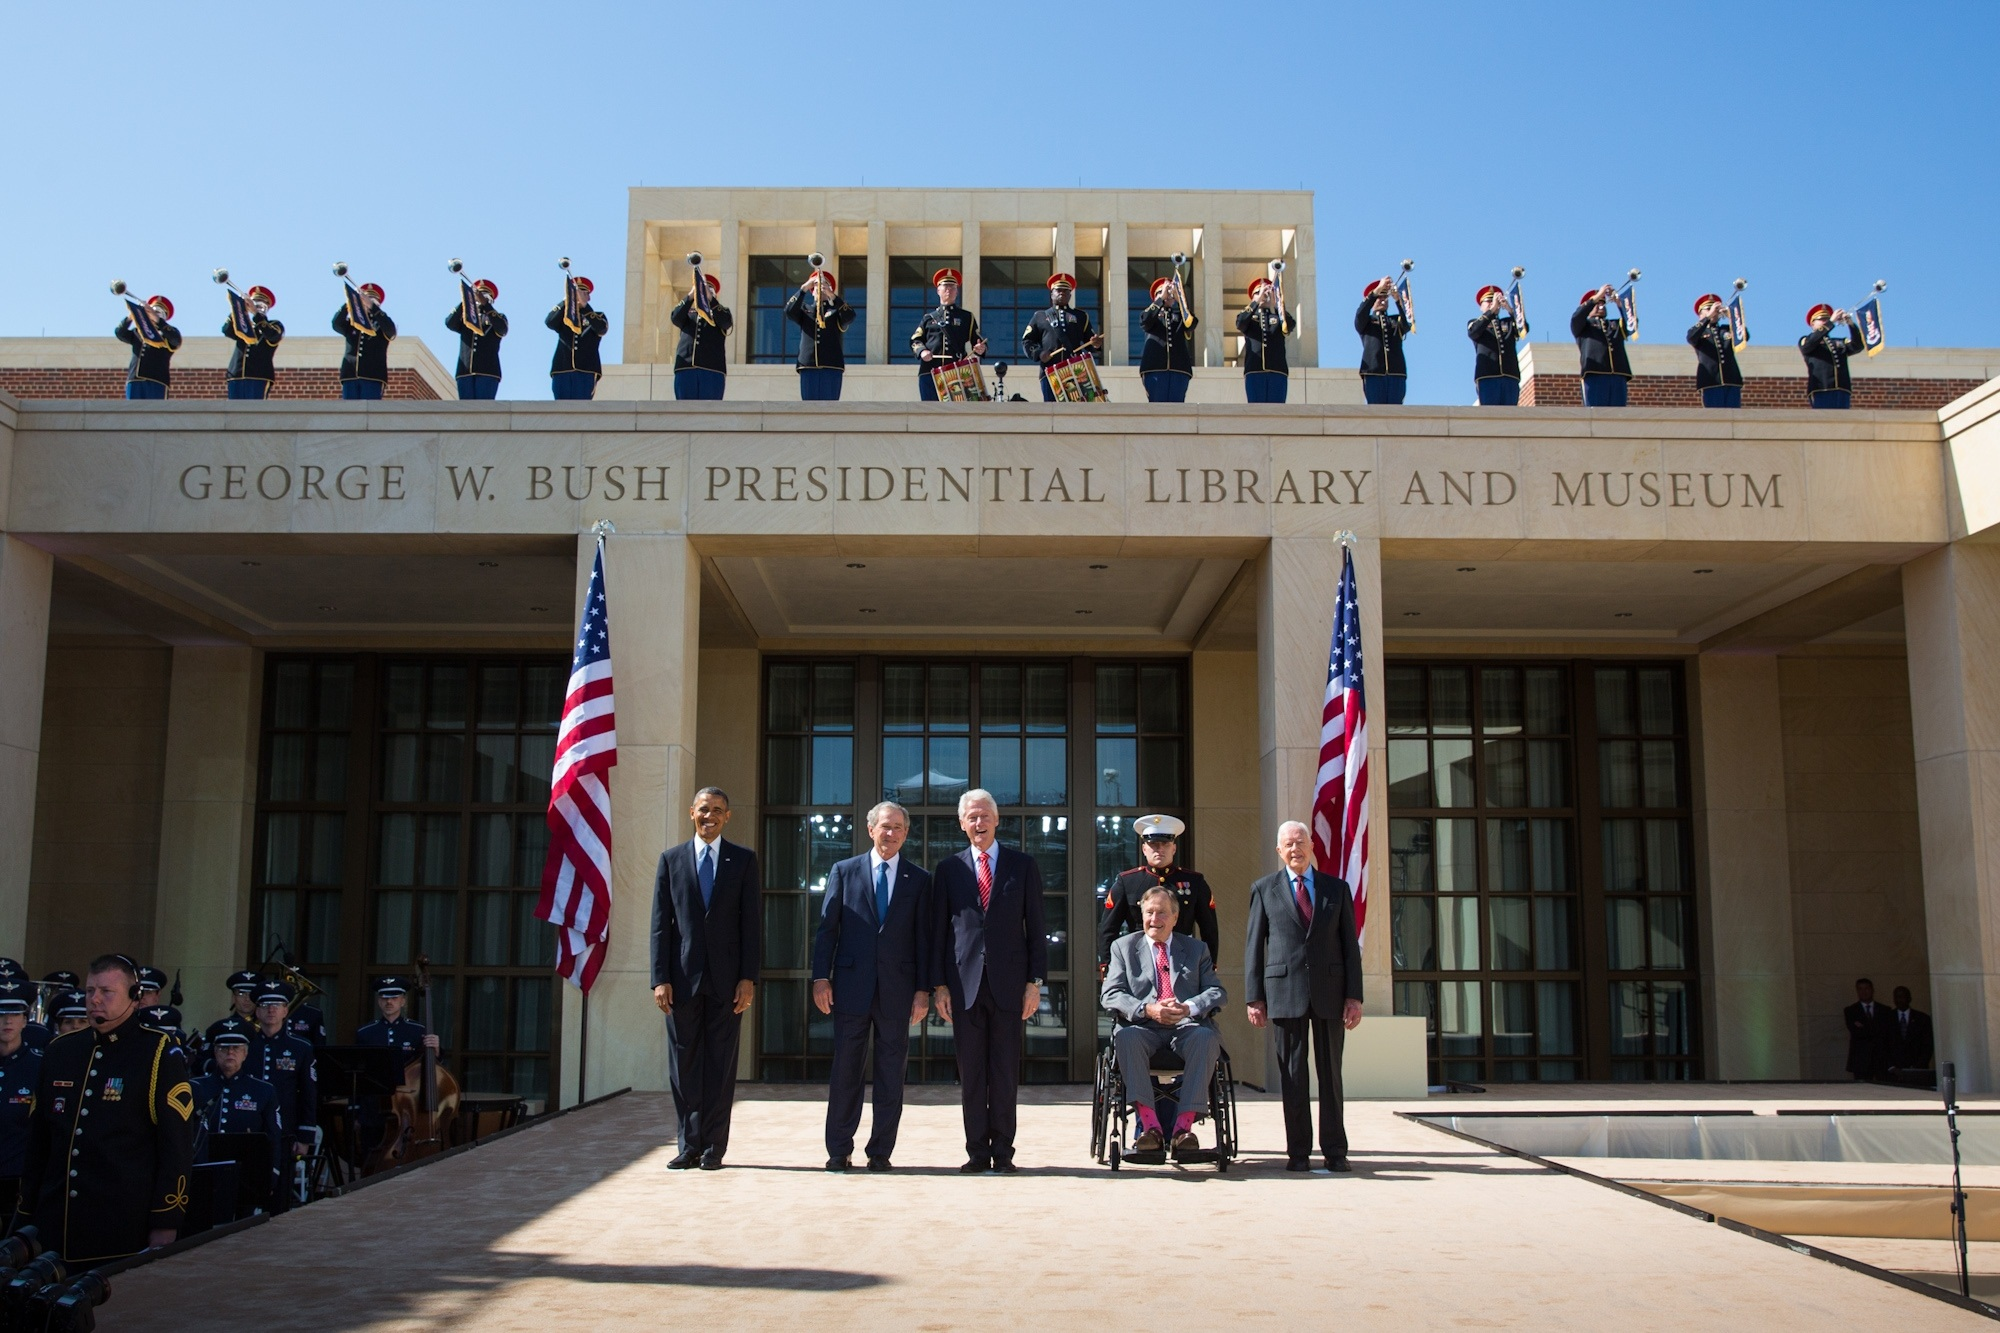 President Barack Obama joins former Presidents George W. Bush, Bill Clinton, George H.W. Bush and Jimmy Carter on stage during the dedication of the George W. Bush Presidential Library and Museum in Dallas, TX, April 25, 2013, . (Photo by Paul Morse, courtesy of the George W. Bush Presidential Library, National Archives)